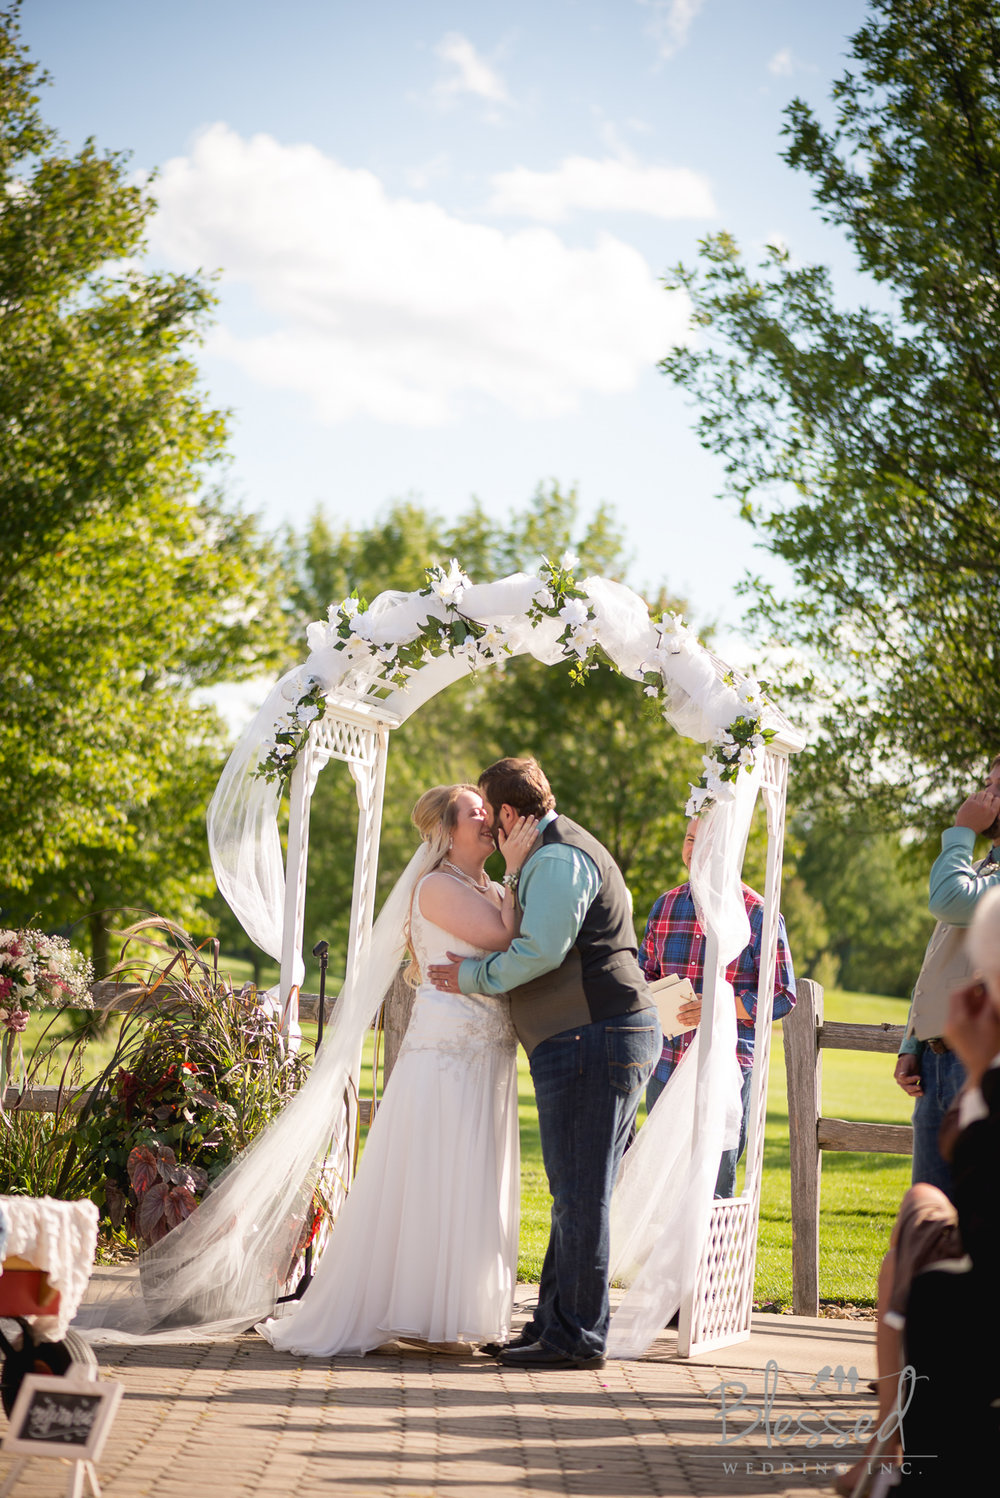 Destination Wedding Photography Minnesota By Blessed Wedding Photographers-94.jpg